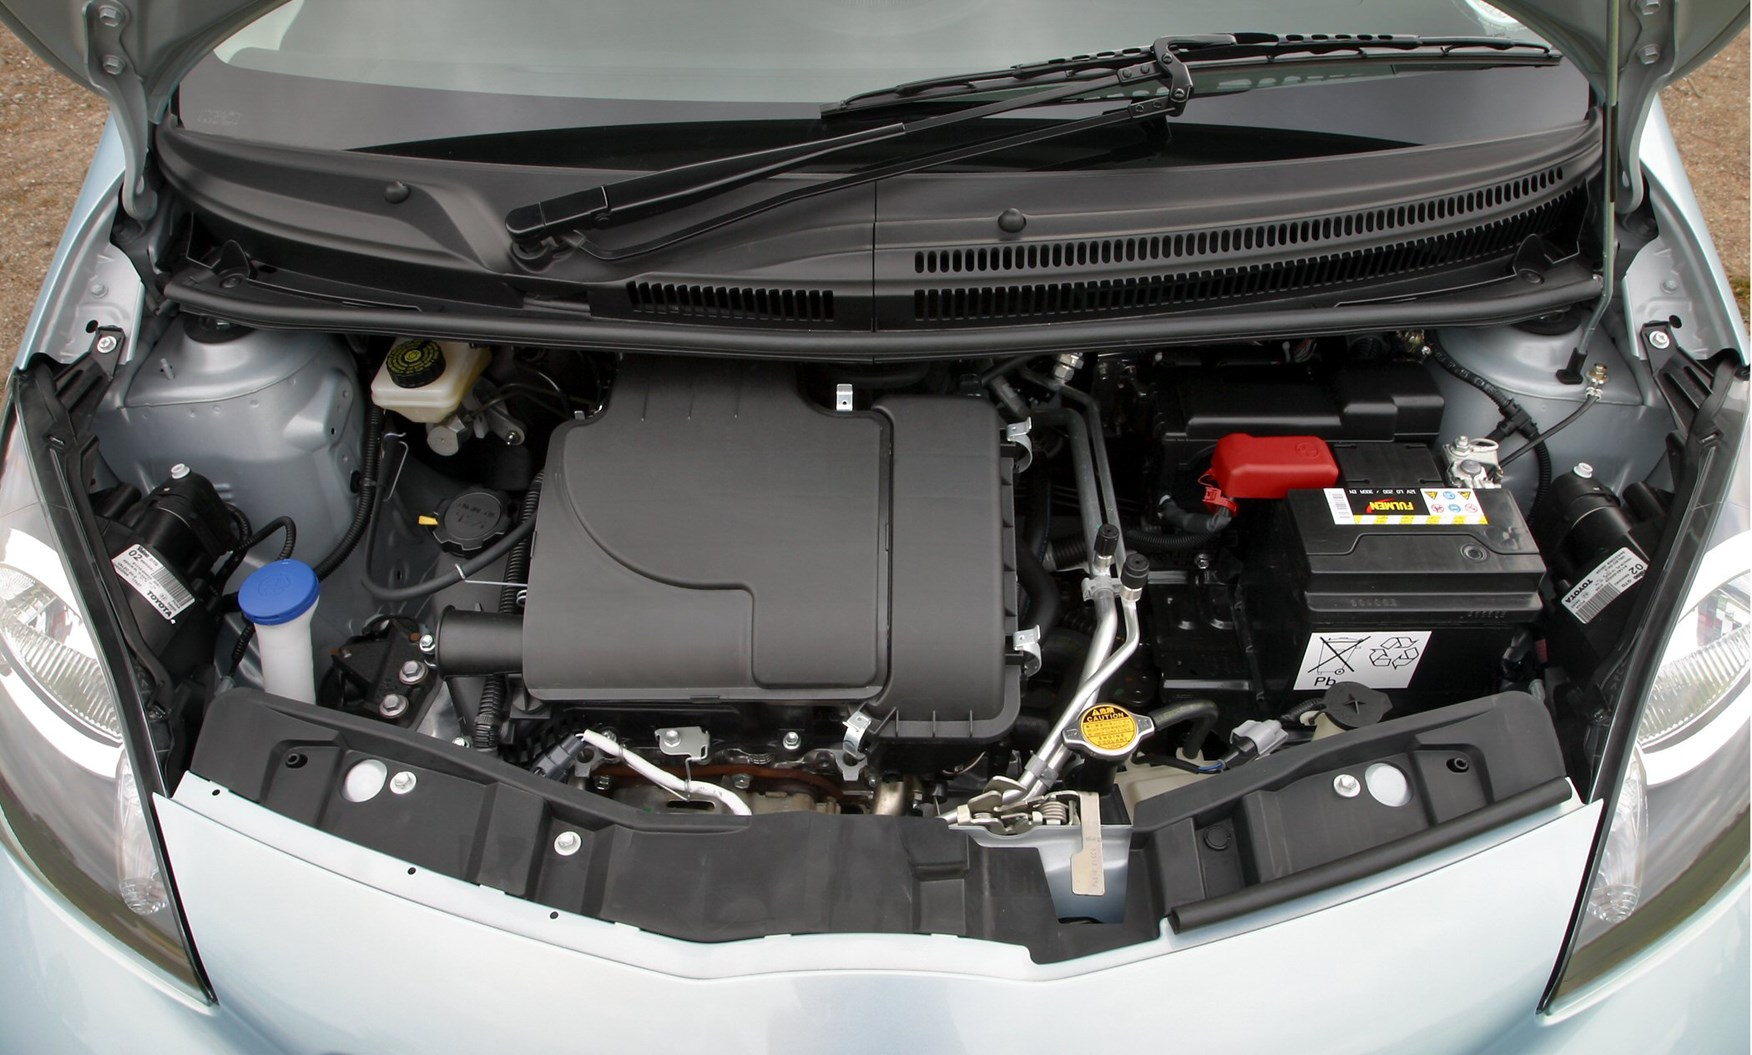 Toyota Aygo Hatchback Review 2005 2014 Parkers